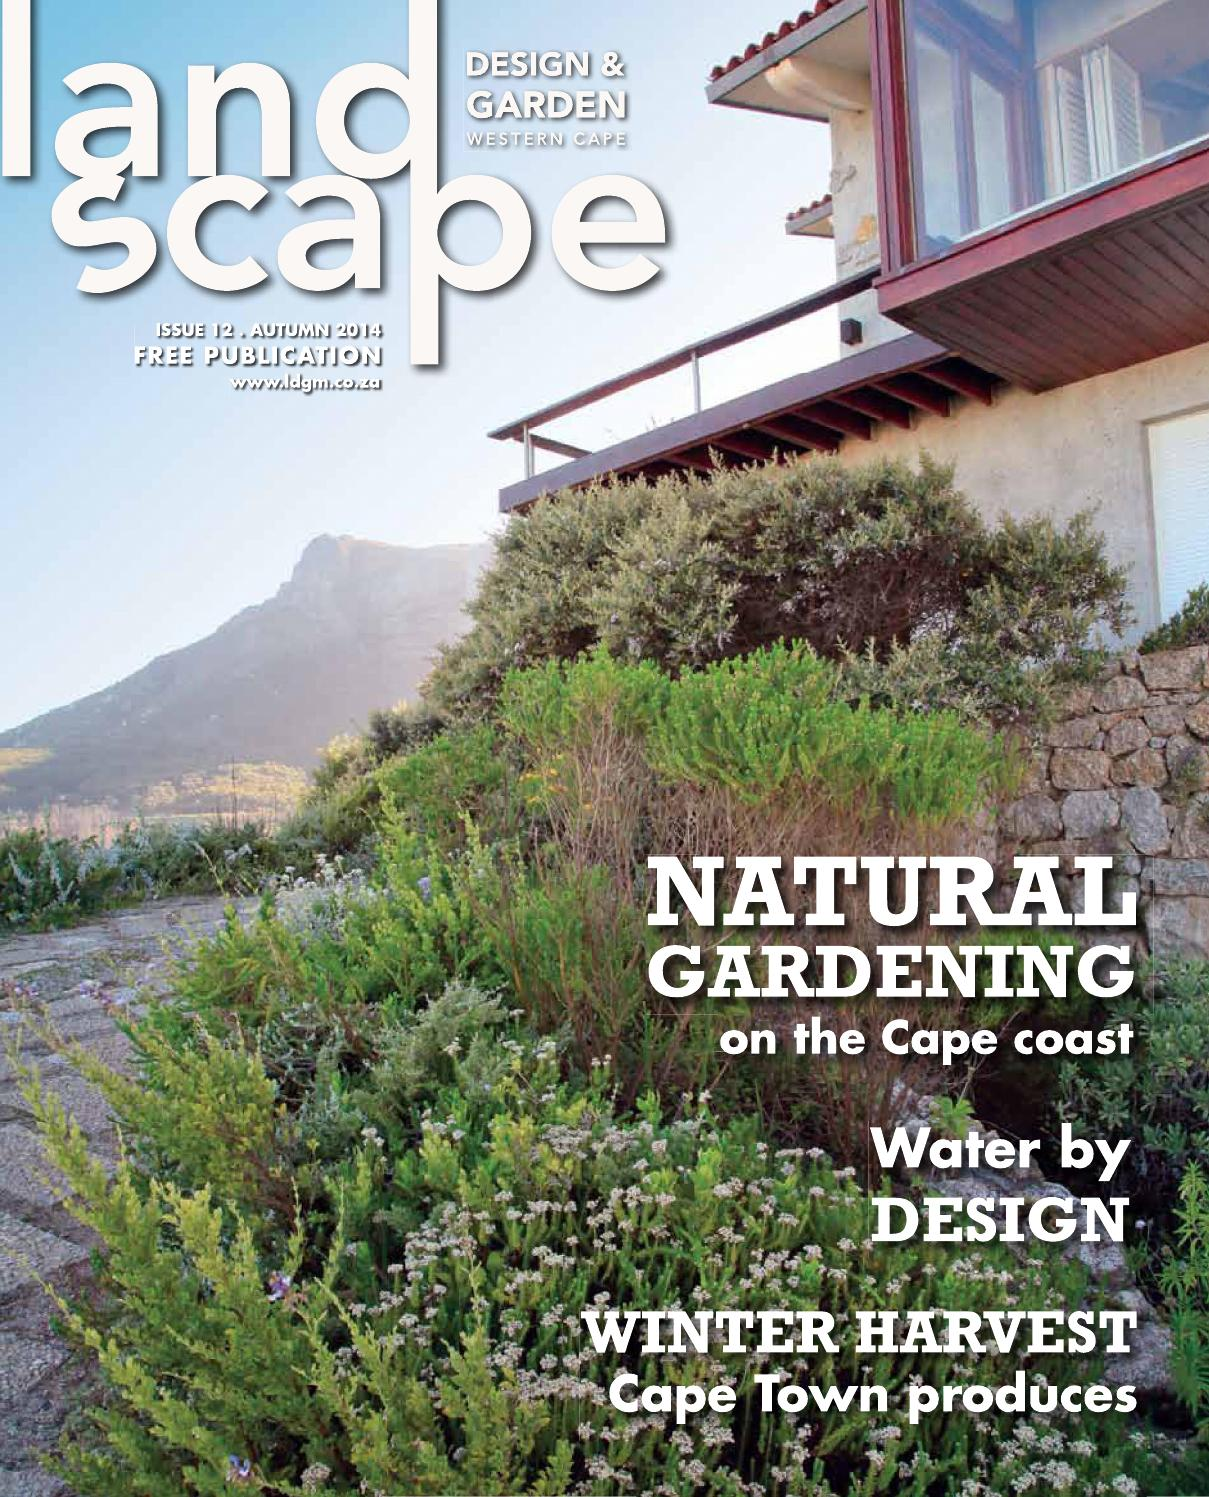 Landscape Design and Garden Magazine - issuu